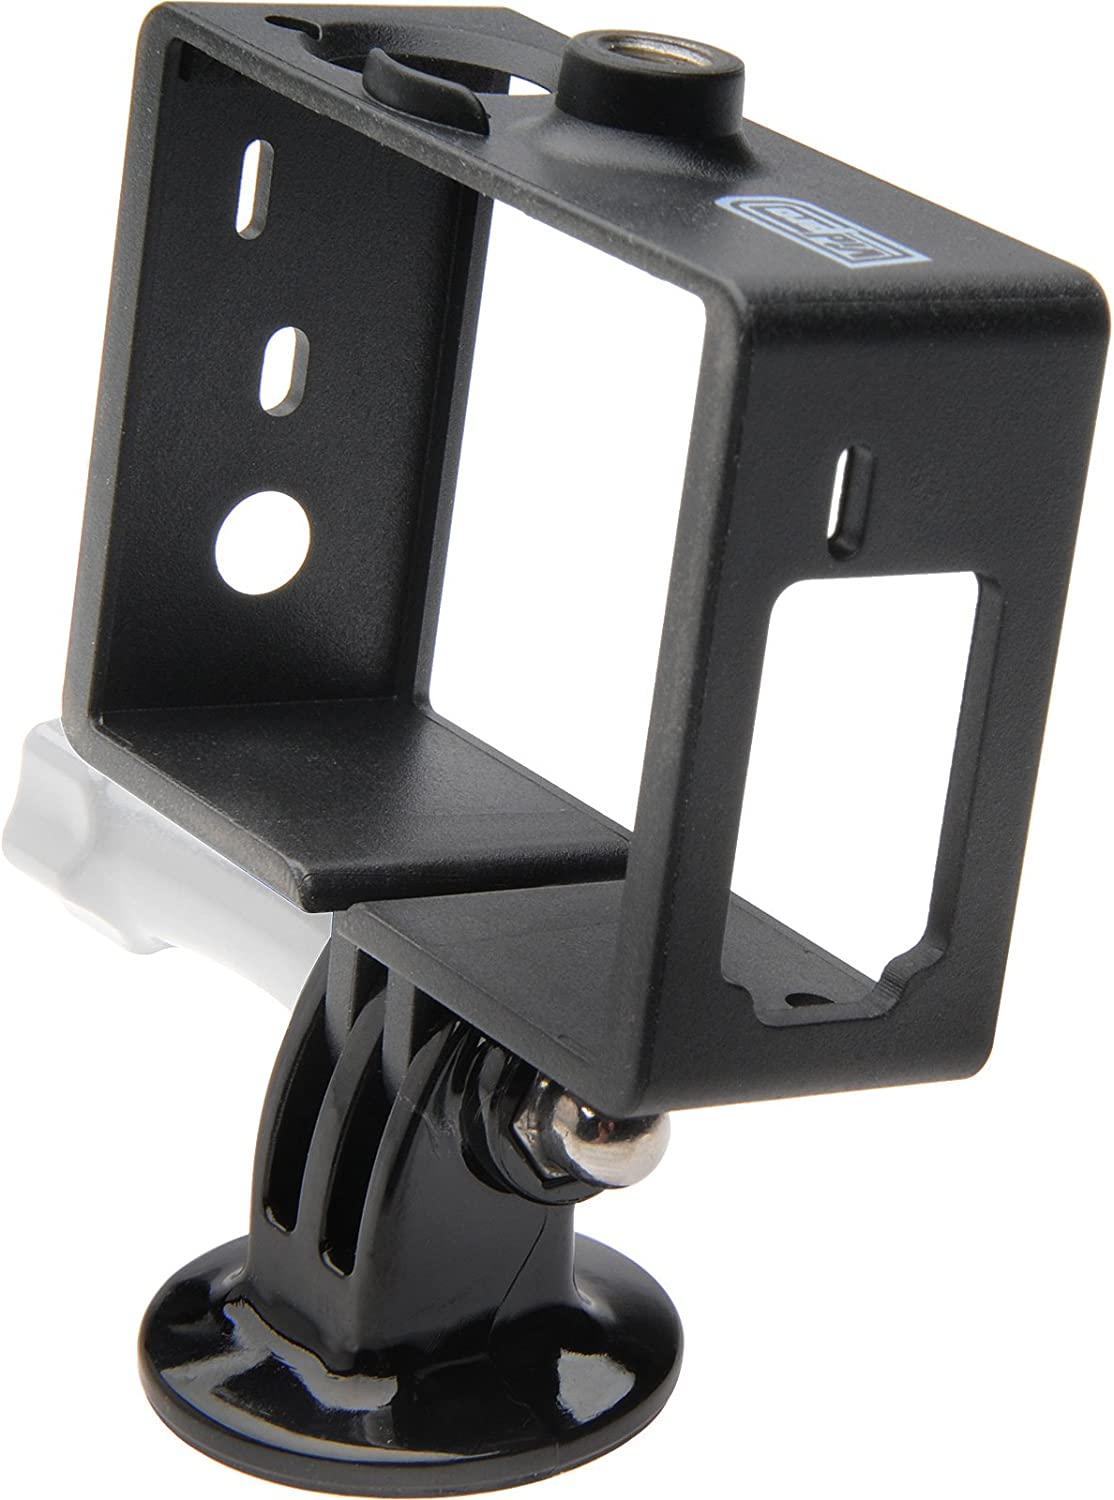 Vidpro FR-GP Frame Mount for GoPro HERO 3//3+//4 Action Camera